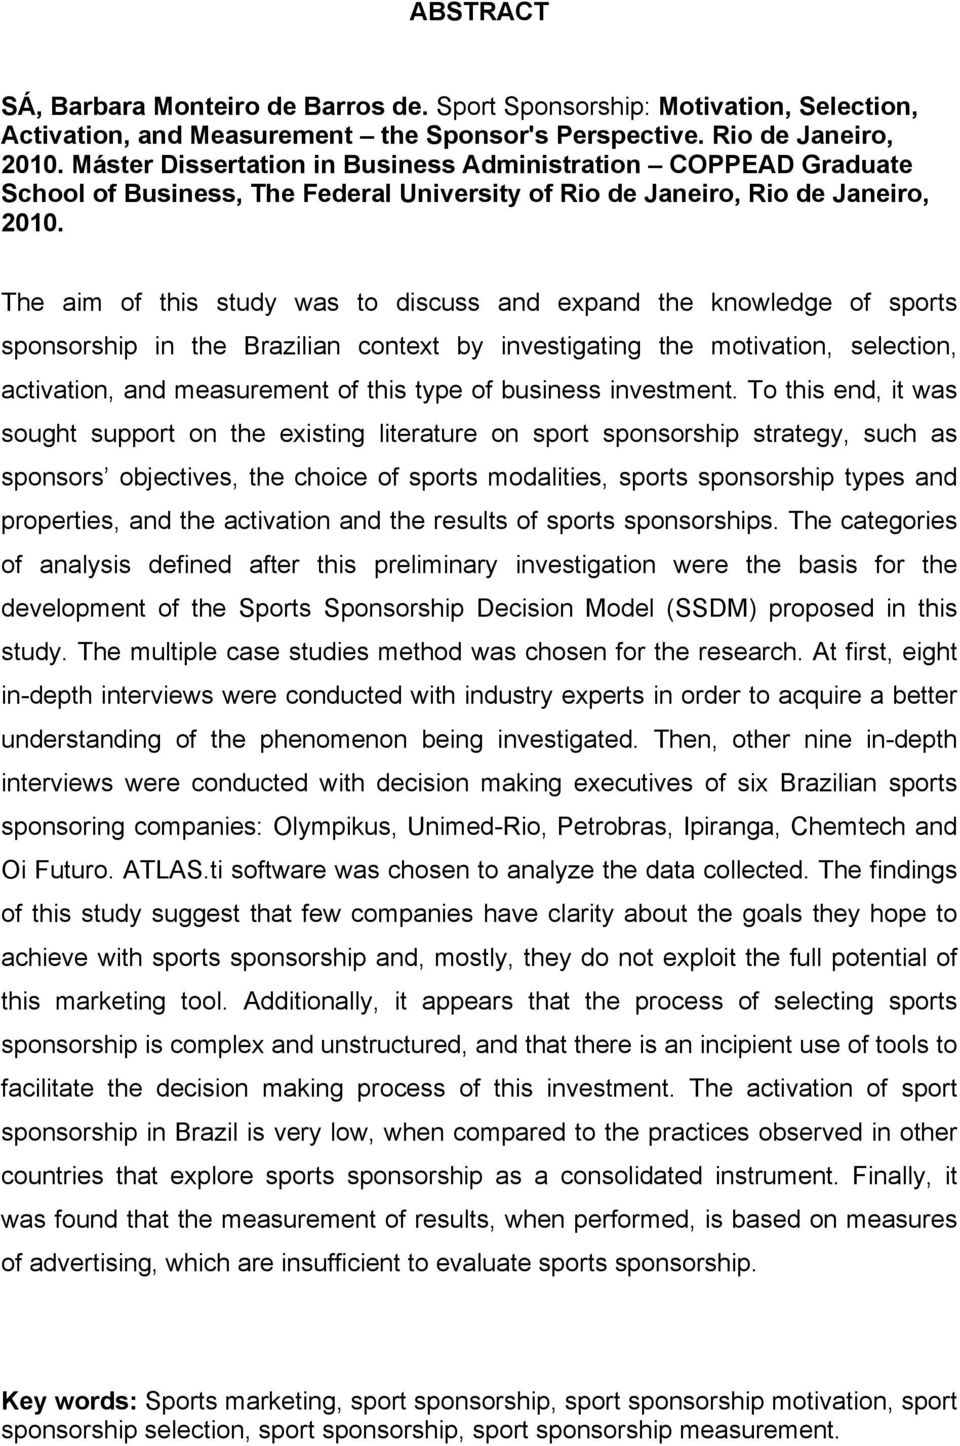 The aim of this study was to discuss and expand the knowledge of sports sponsorship in the Brazilian context by investigating the motivation, selection, activation, and measurement of this type of